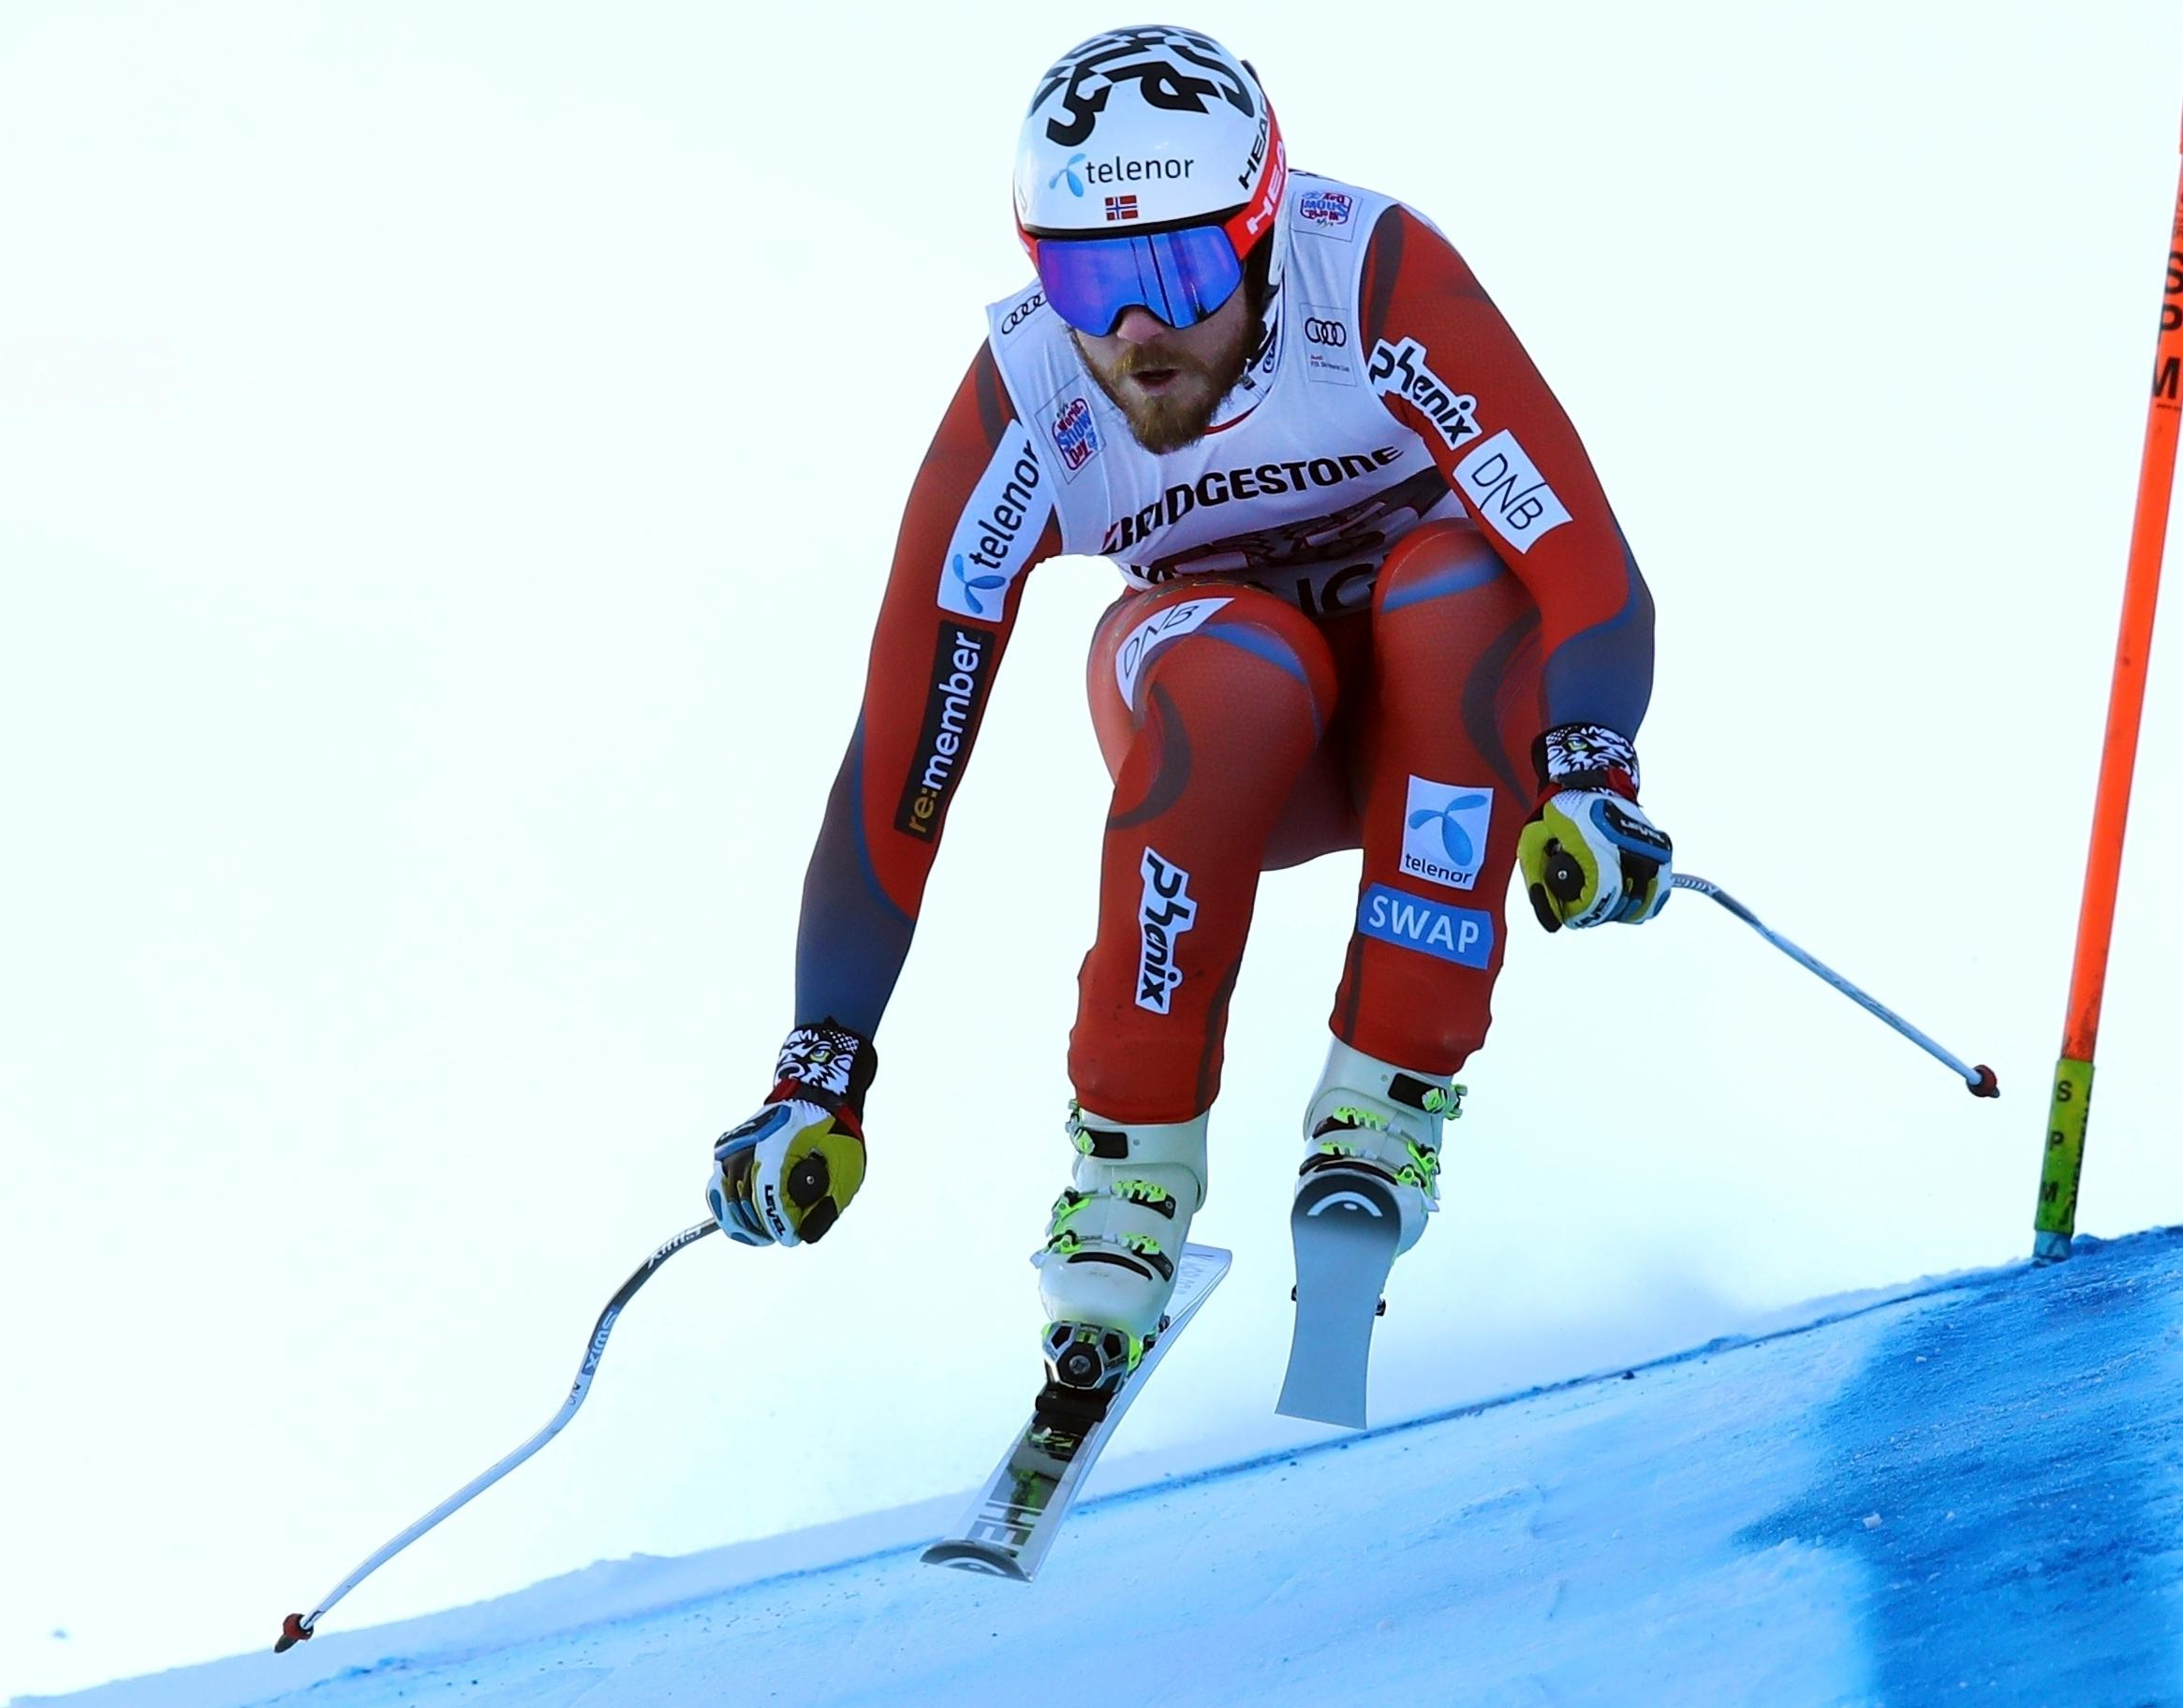 File- This jan. 12, 2018, file photo shows Norway's Kjetil Jansrud competing during the first portion of an alpine ski, men's World Cup combined race, in Wengen, Switzerland. The Olympic speed courses at Jeongseon were raced just once on each World Cup circuit. Two years ago, Jansrud averaged more than 60 mph (100 kph) while winning by 0.20 seconds, a solid winning margin. (AP Photo/Alessandro Trovati, File)